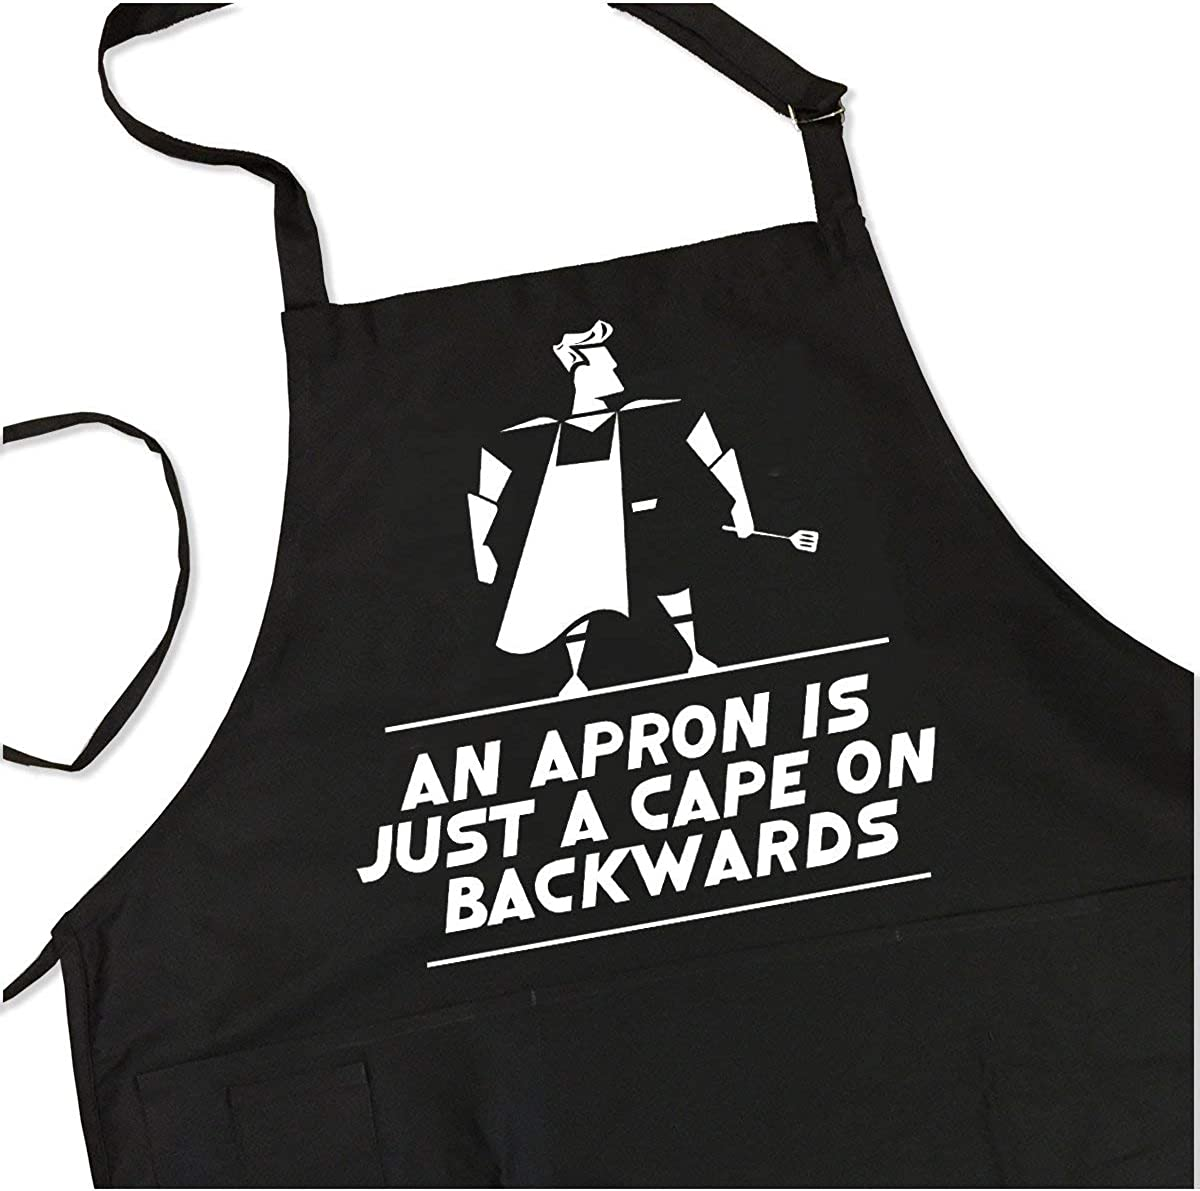 ApronMen Just a Cape BBQ Grill One Adjustable Men Super Special SALE held for Outlet sale feature Si Apron